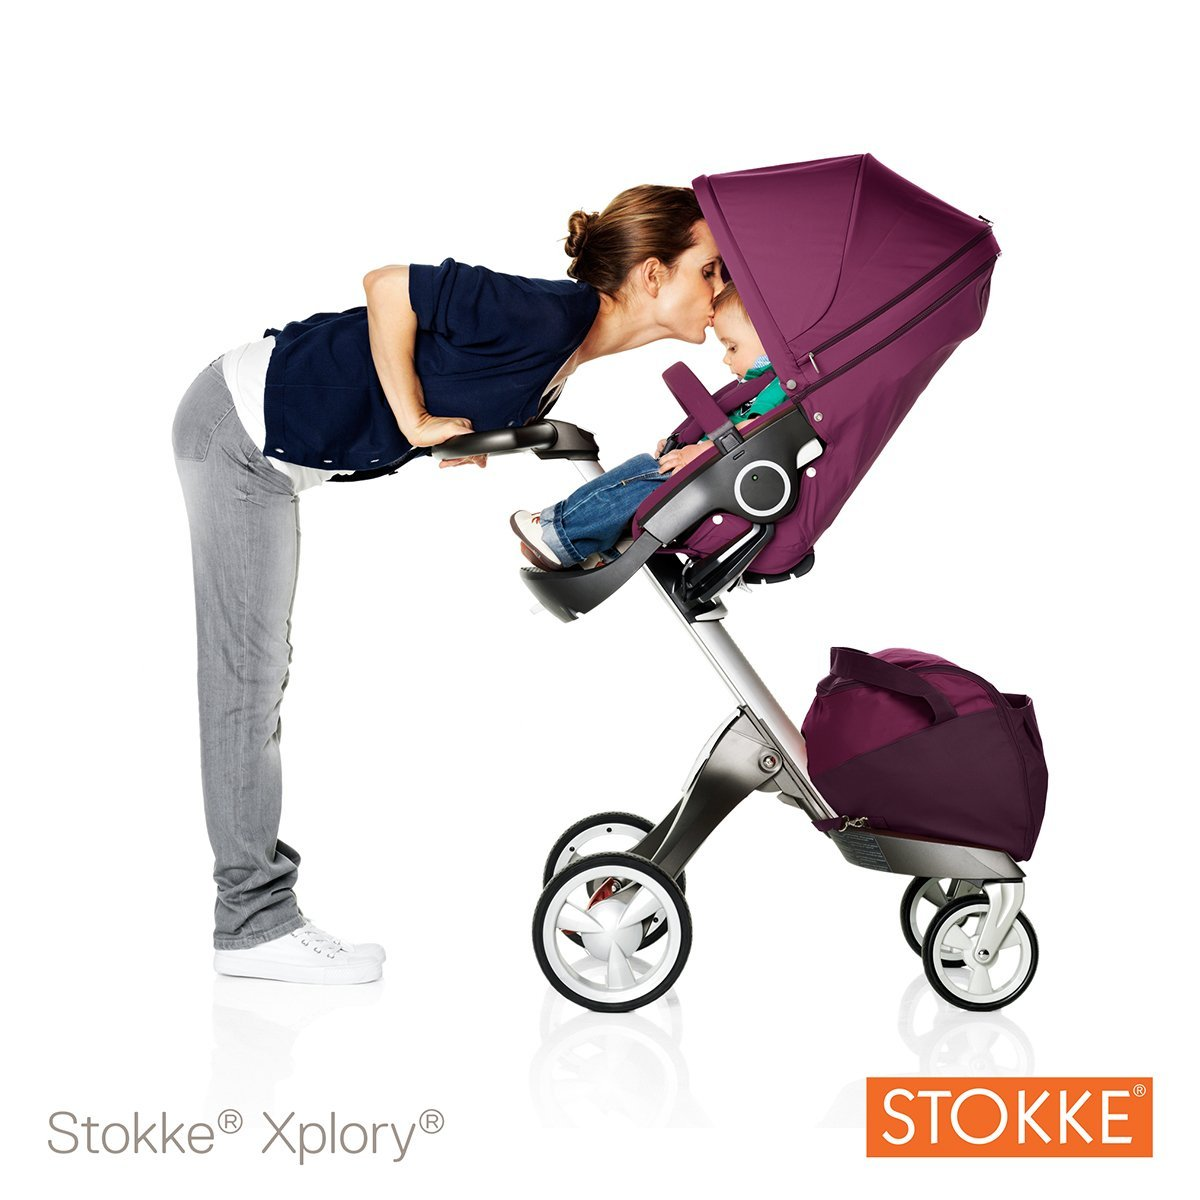 my epic guide to the stokke xplory stroller